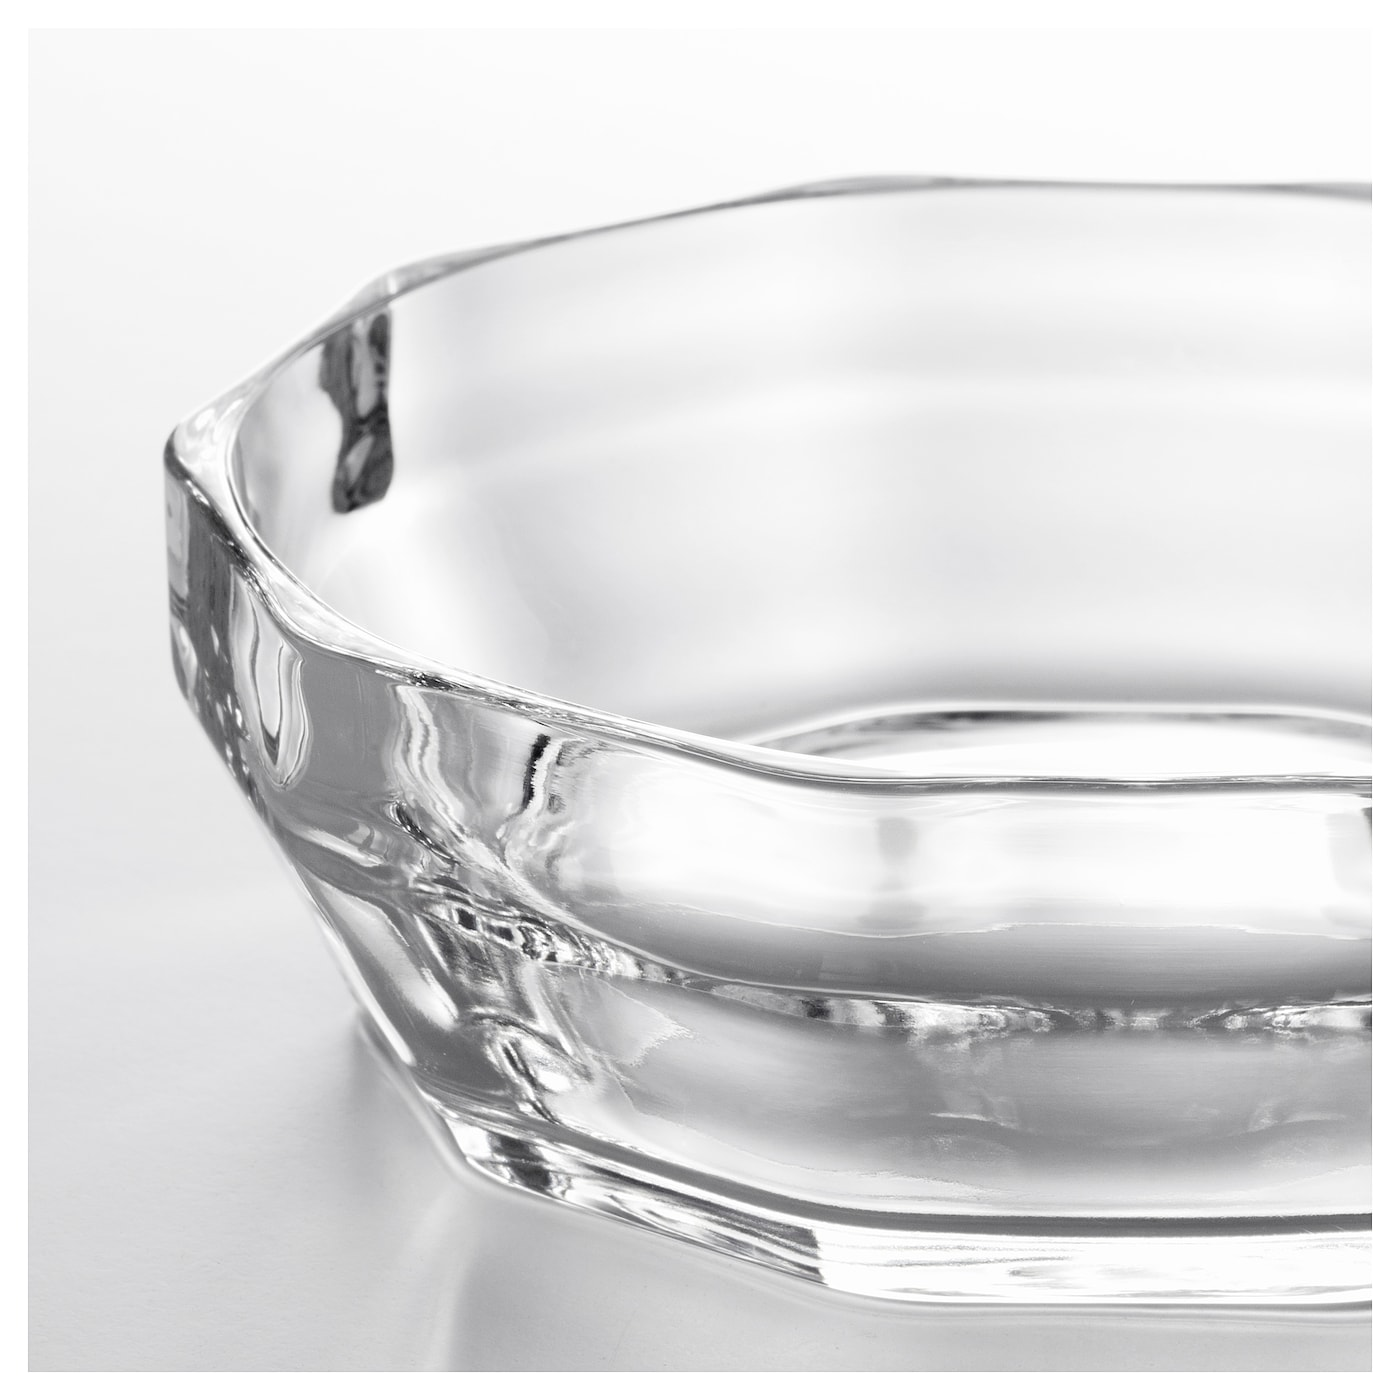 IKEA LYSKRAFT bowl Practical and useful bowl, suitable both for serving and eating from.